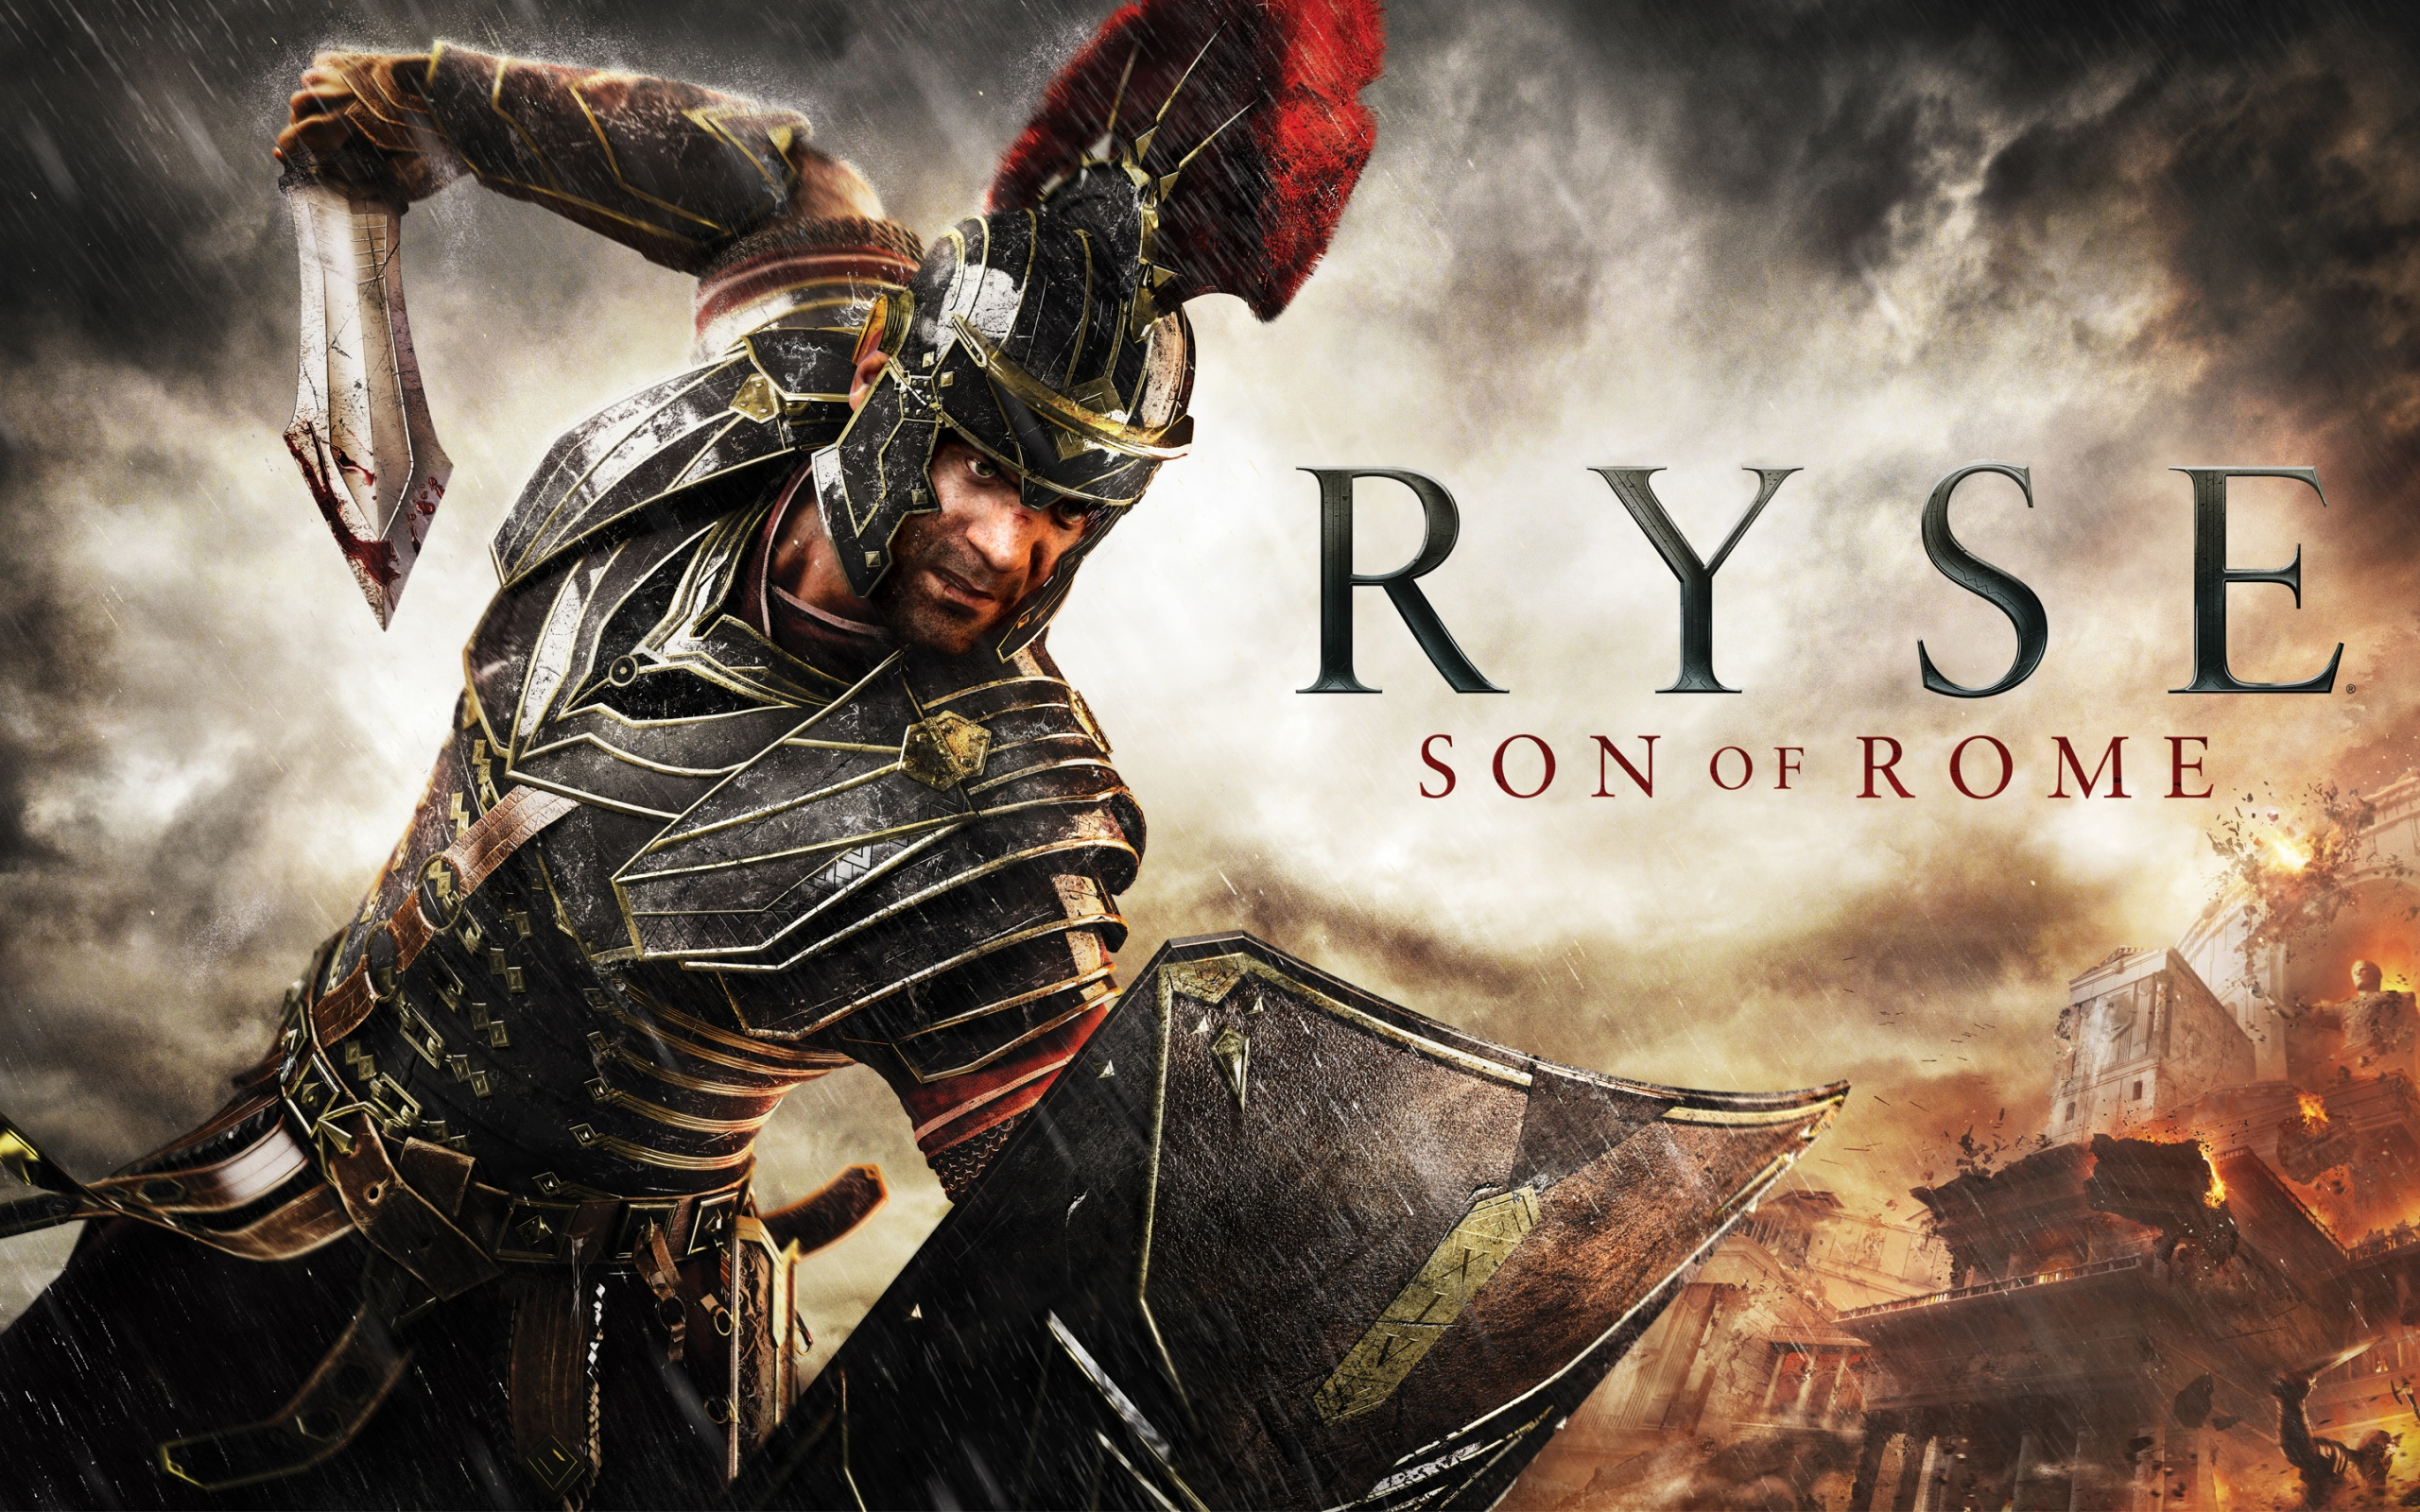 Ryse Son Of Rome Wallpaper: Ryse Son Of Rome Game Wallpapers In Jpg Format For Free